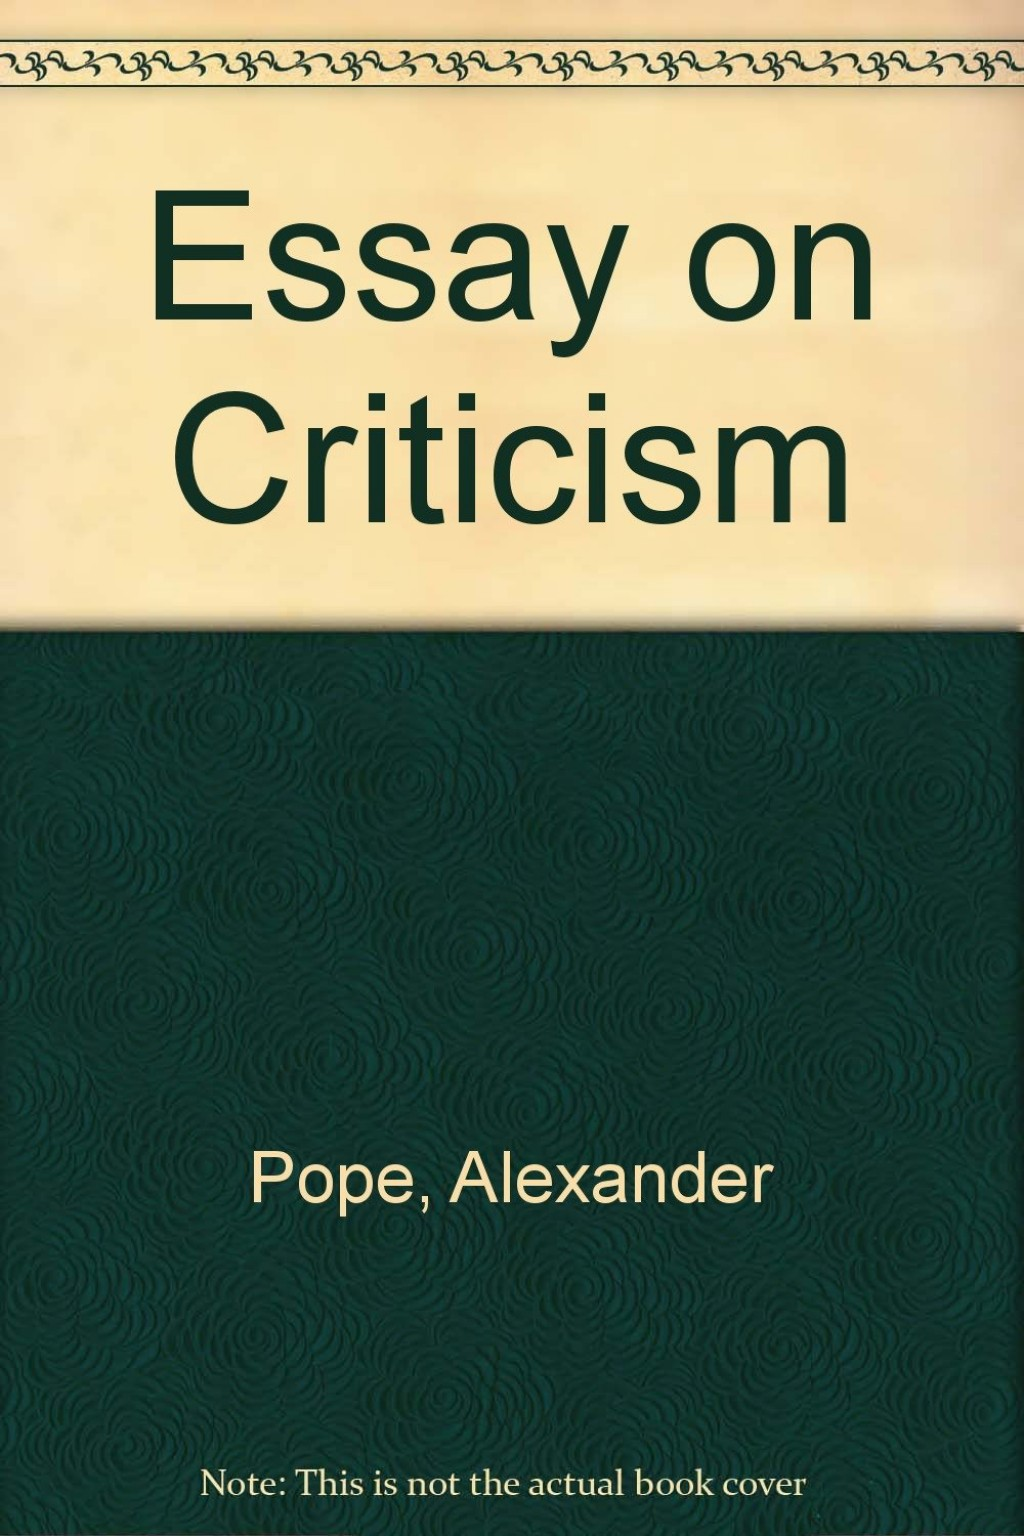 008 71dckmtazql Essay Example Pope On Unique Criticism Part 2 Pope's Was Written In Large